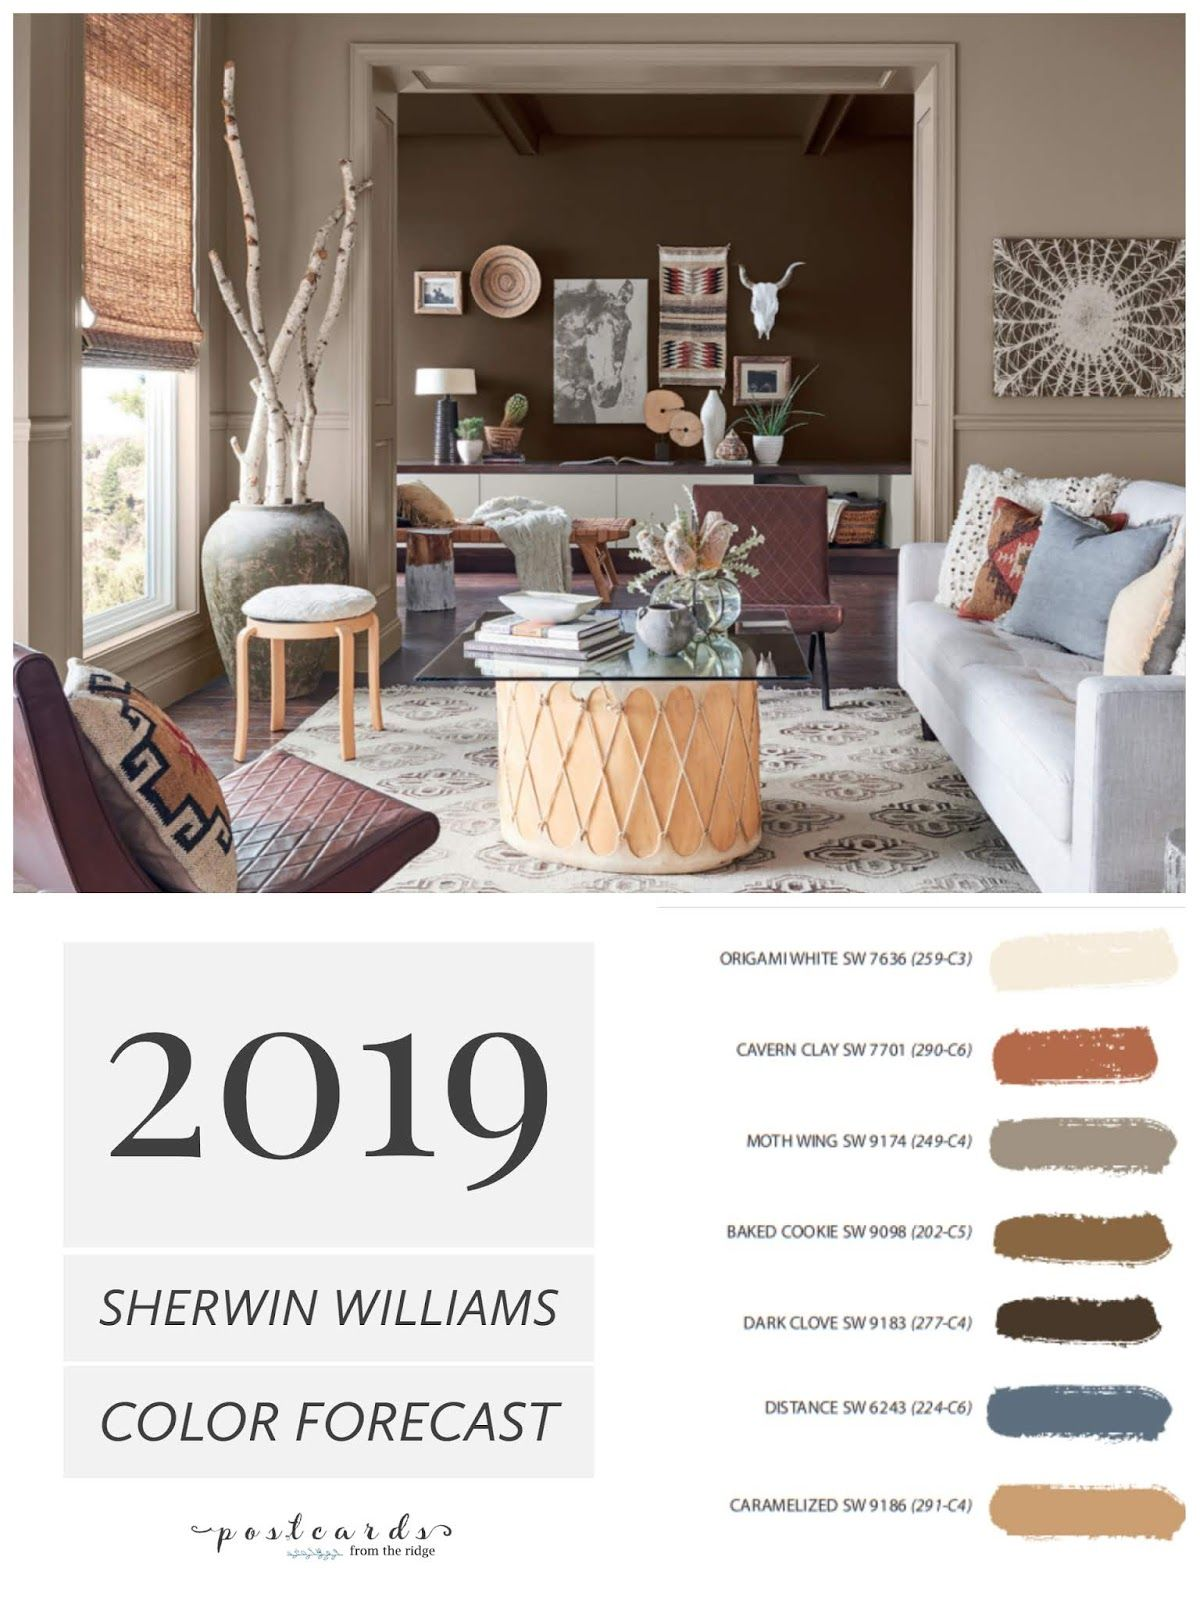 living room paint colors 2019 settee benches color forecast from sherwin williams garage house love this warm neutral palette and all the new ones paintcolors paintcolor colortrends colorforecast interiordesign